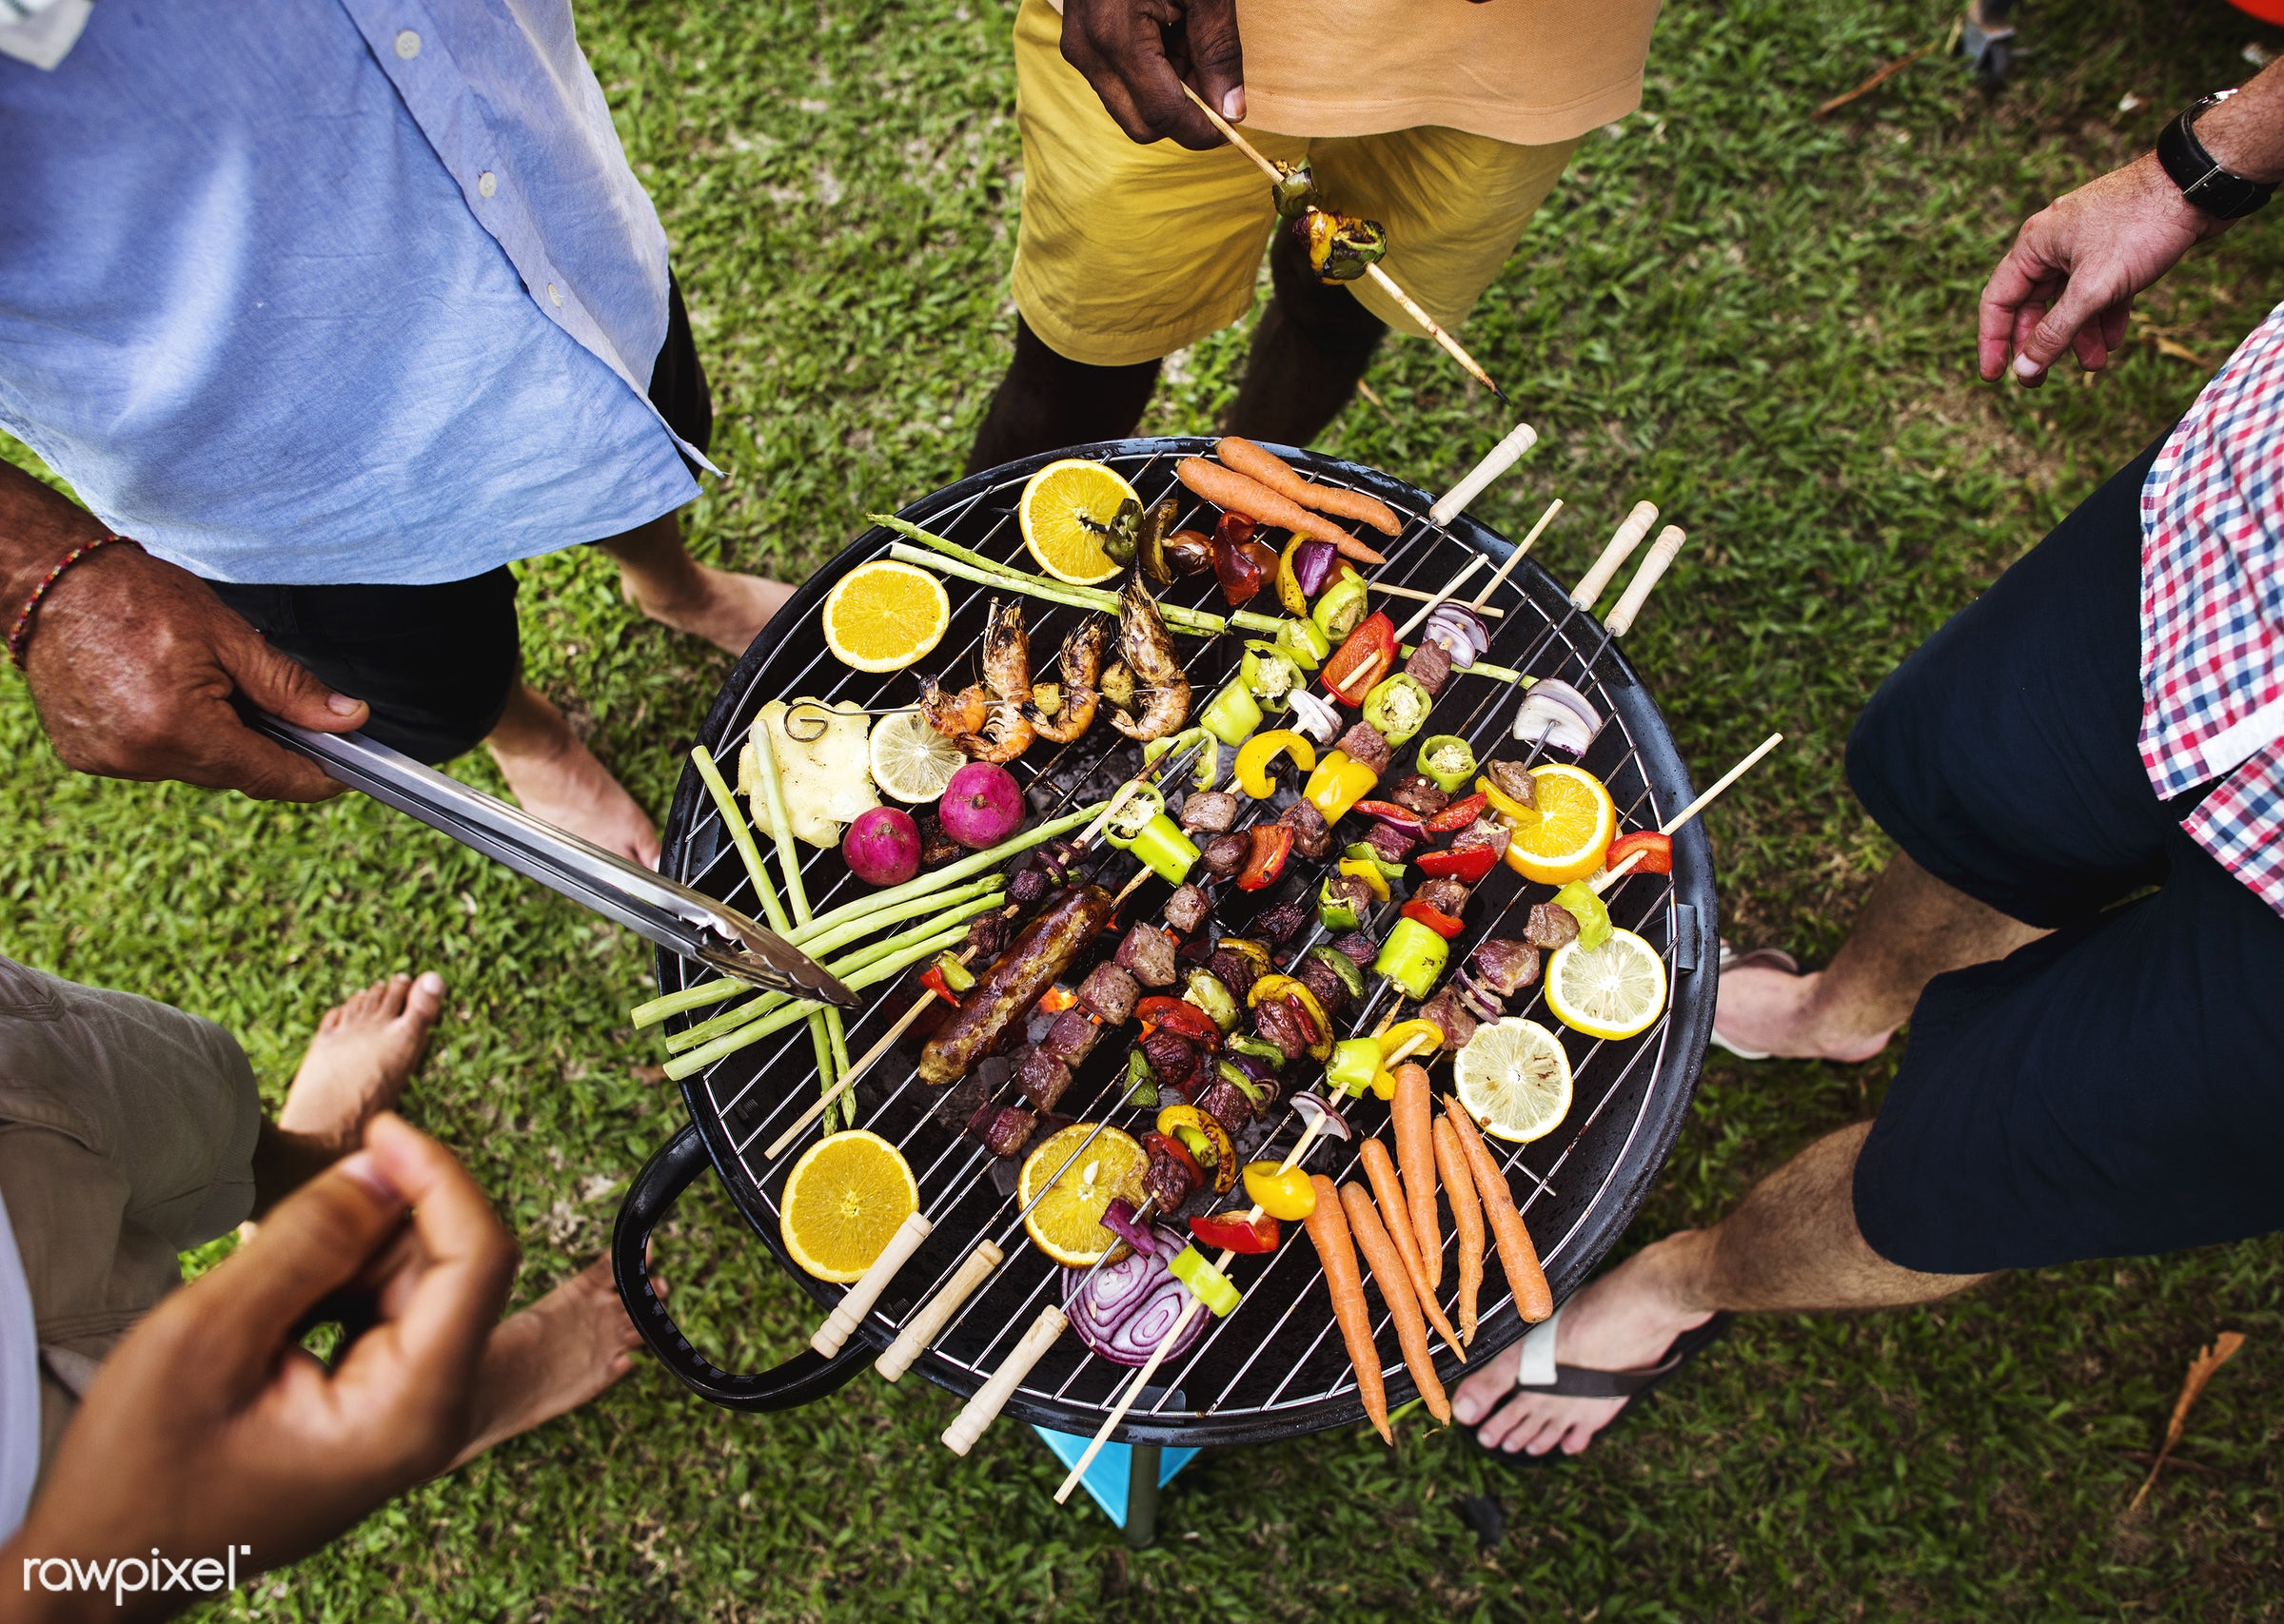 bbq, grill, aerial view, barbecue, cook, cookout, diverse, eating, family, food, friends, outdoors, party, people,...